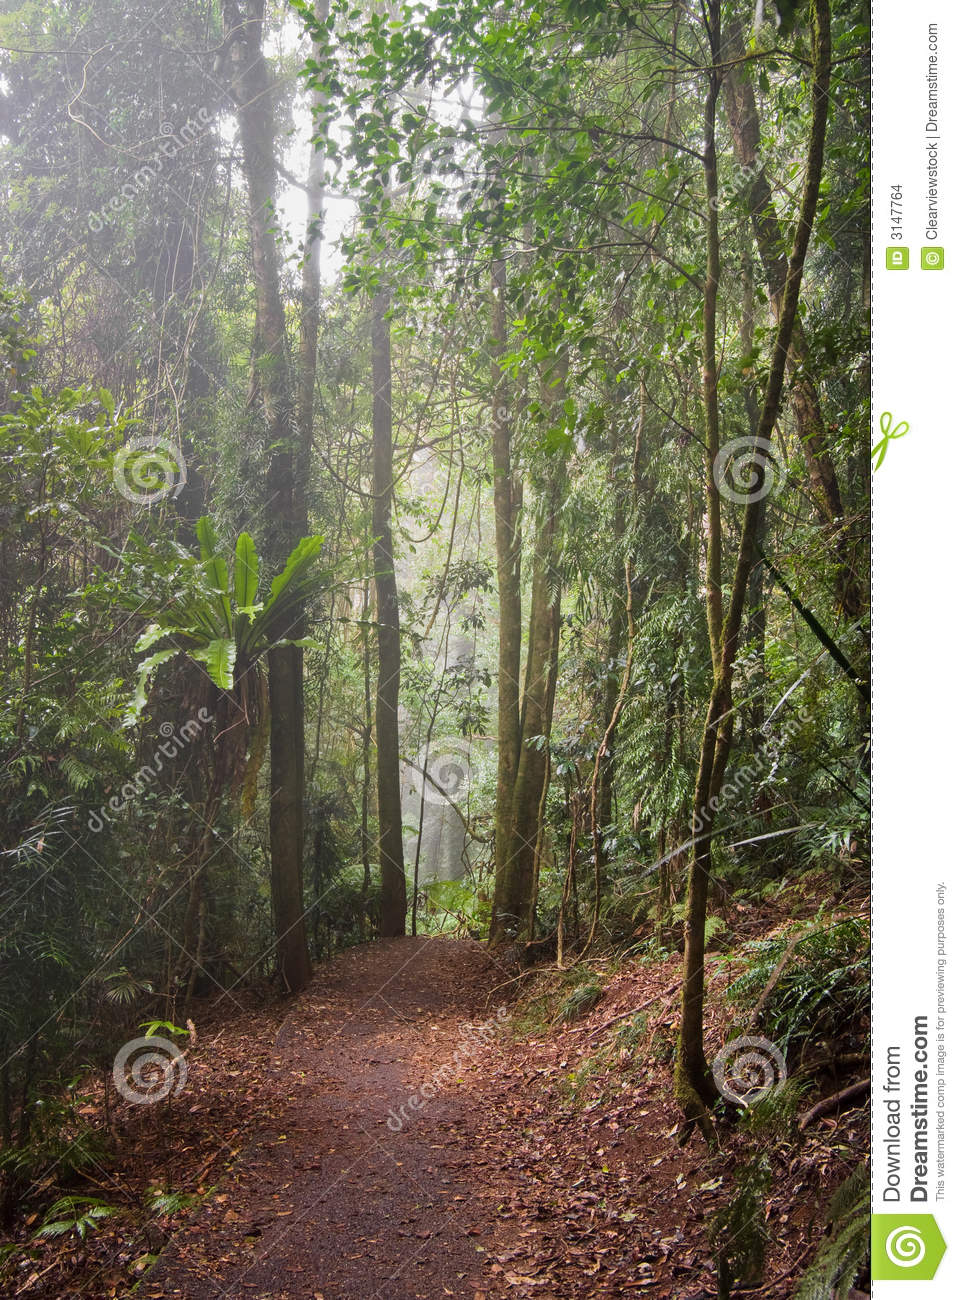 Rain forest path in trees